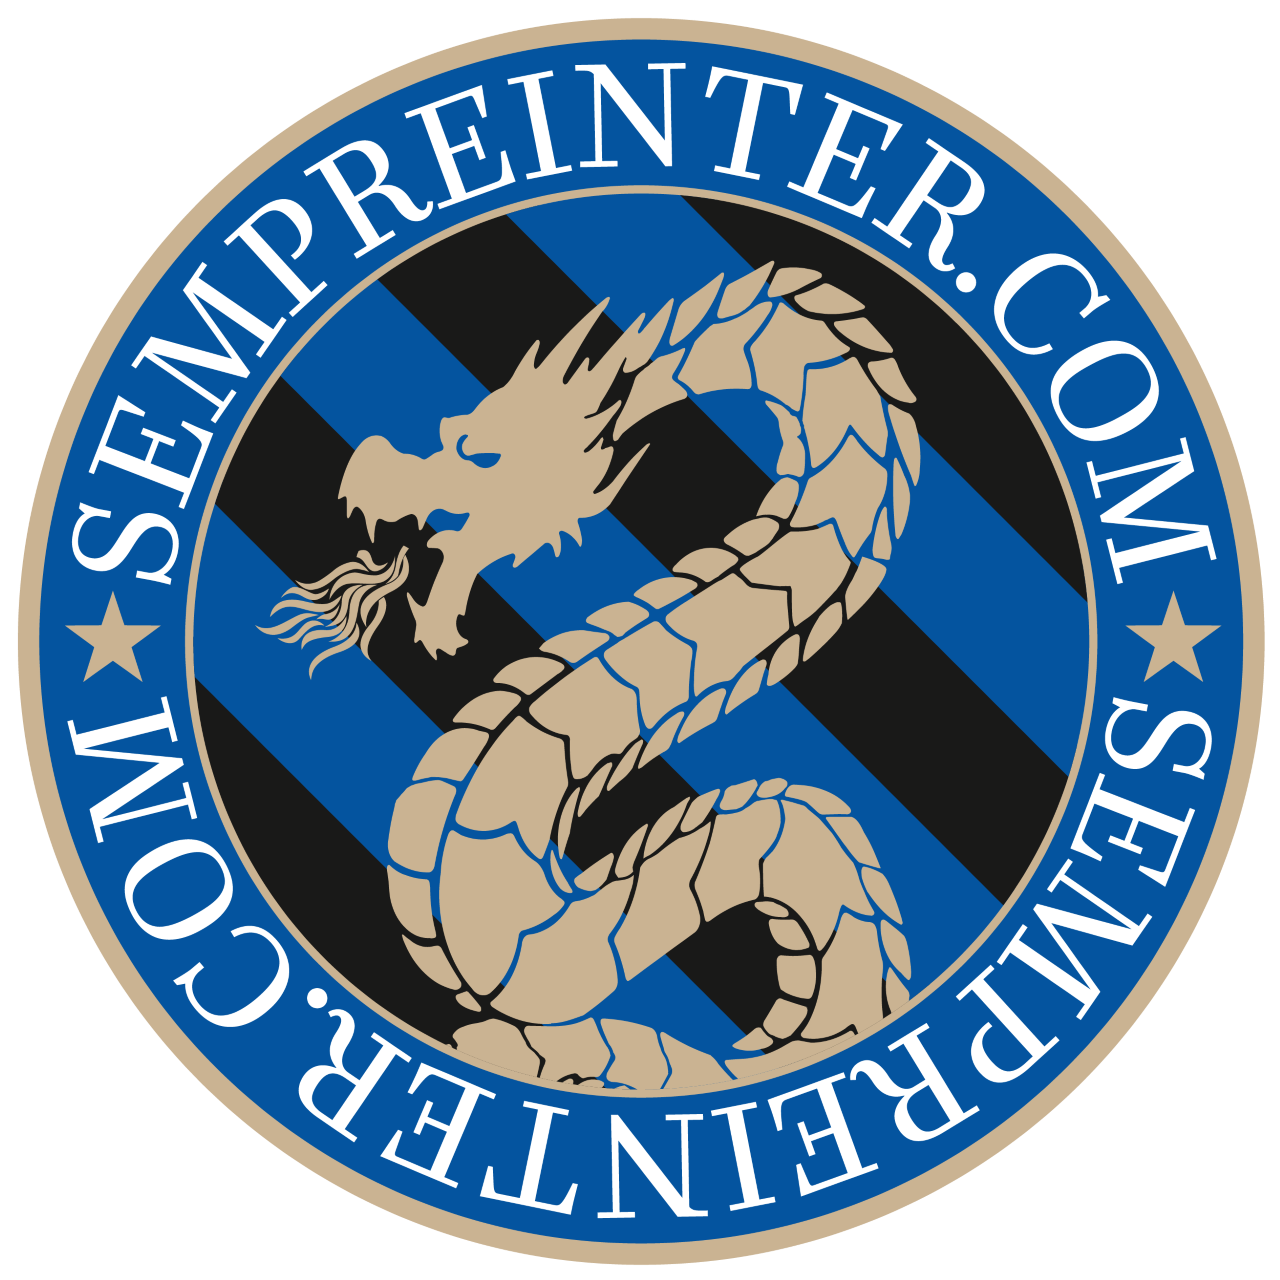 Logo: SempreInter.Com